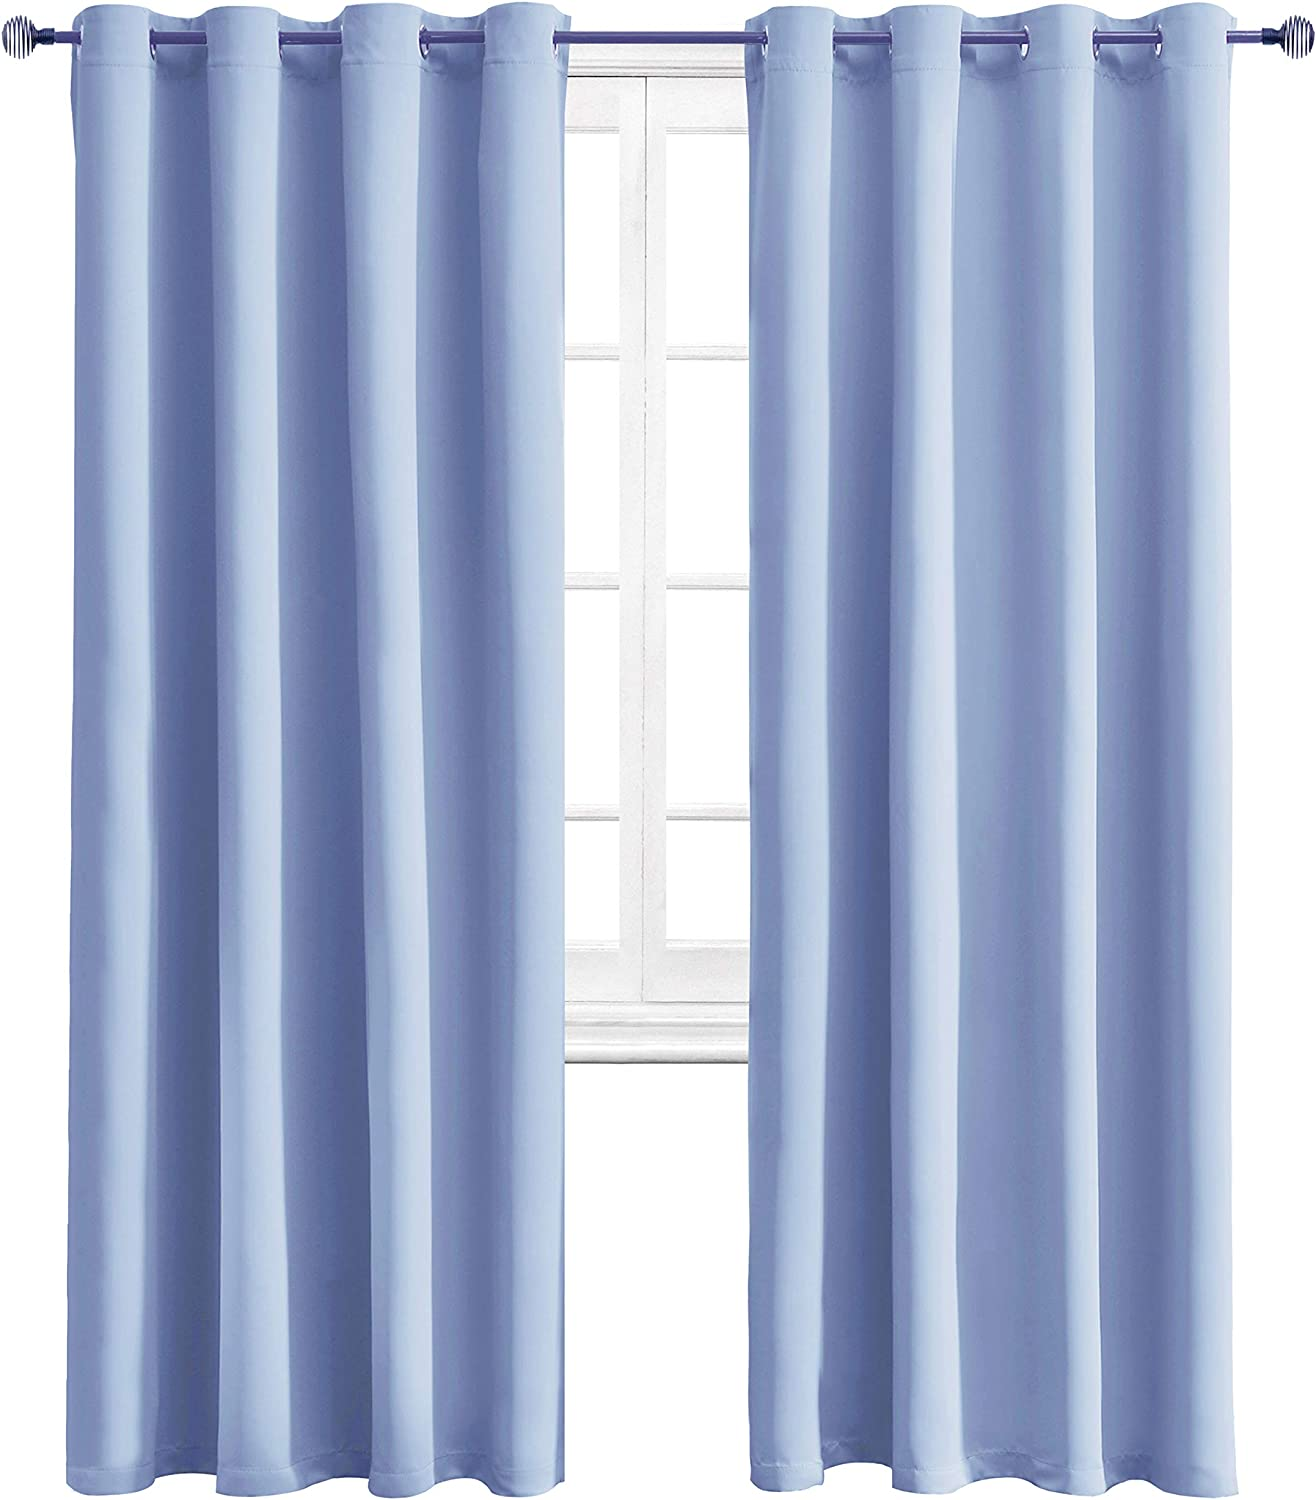 WONTEX Blackout Curtains Room Darkening Thermal Insulated with Grommet Curtains for Living Room, 52 x 84 inch, Light Blue, 2 Panels